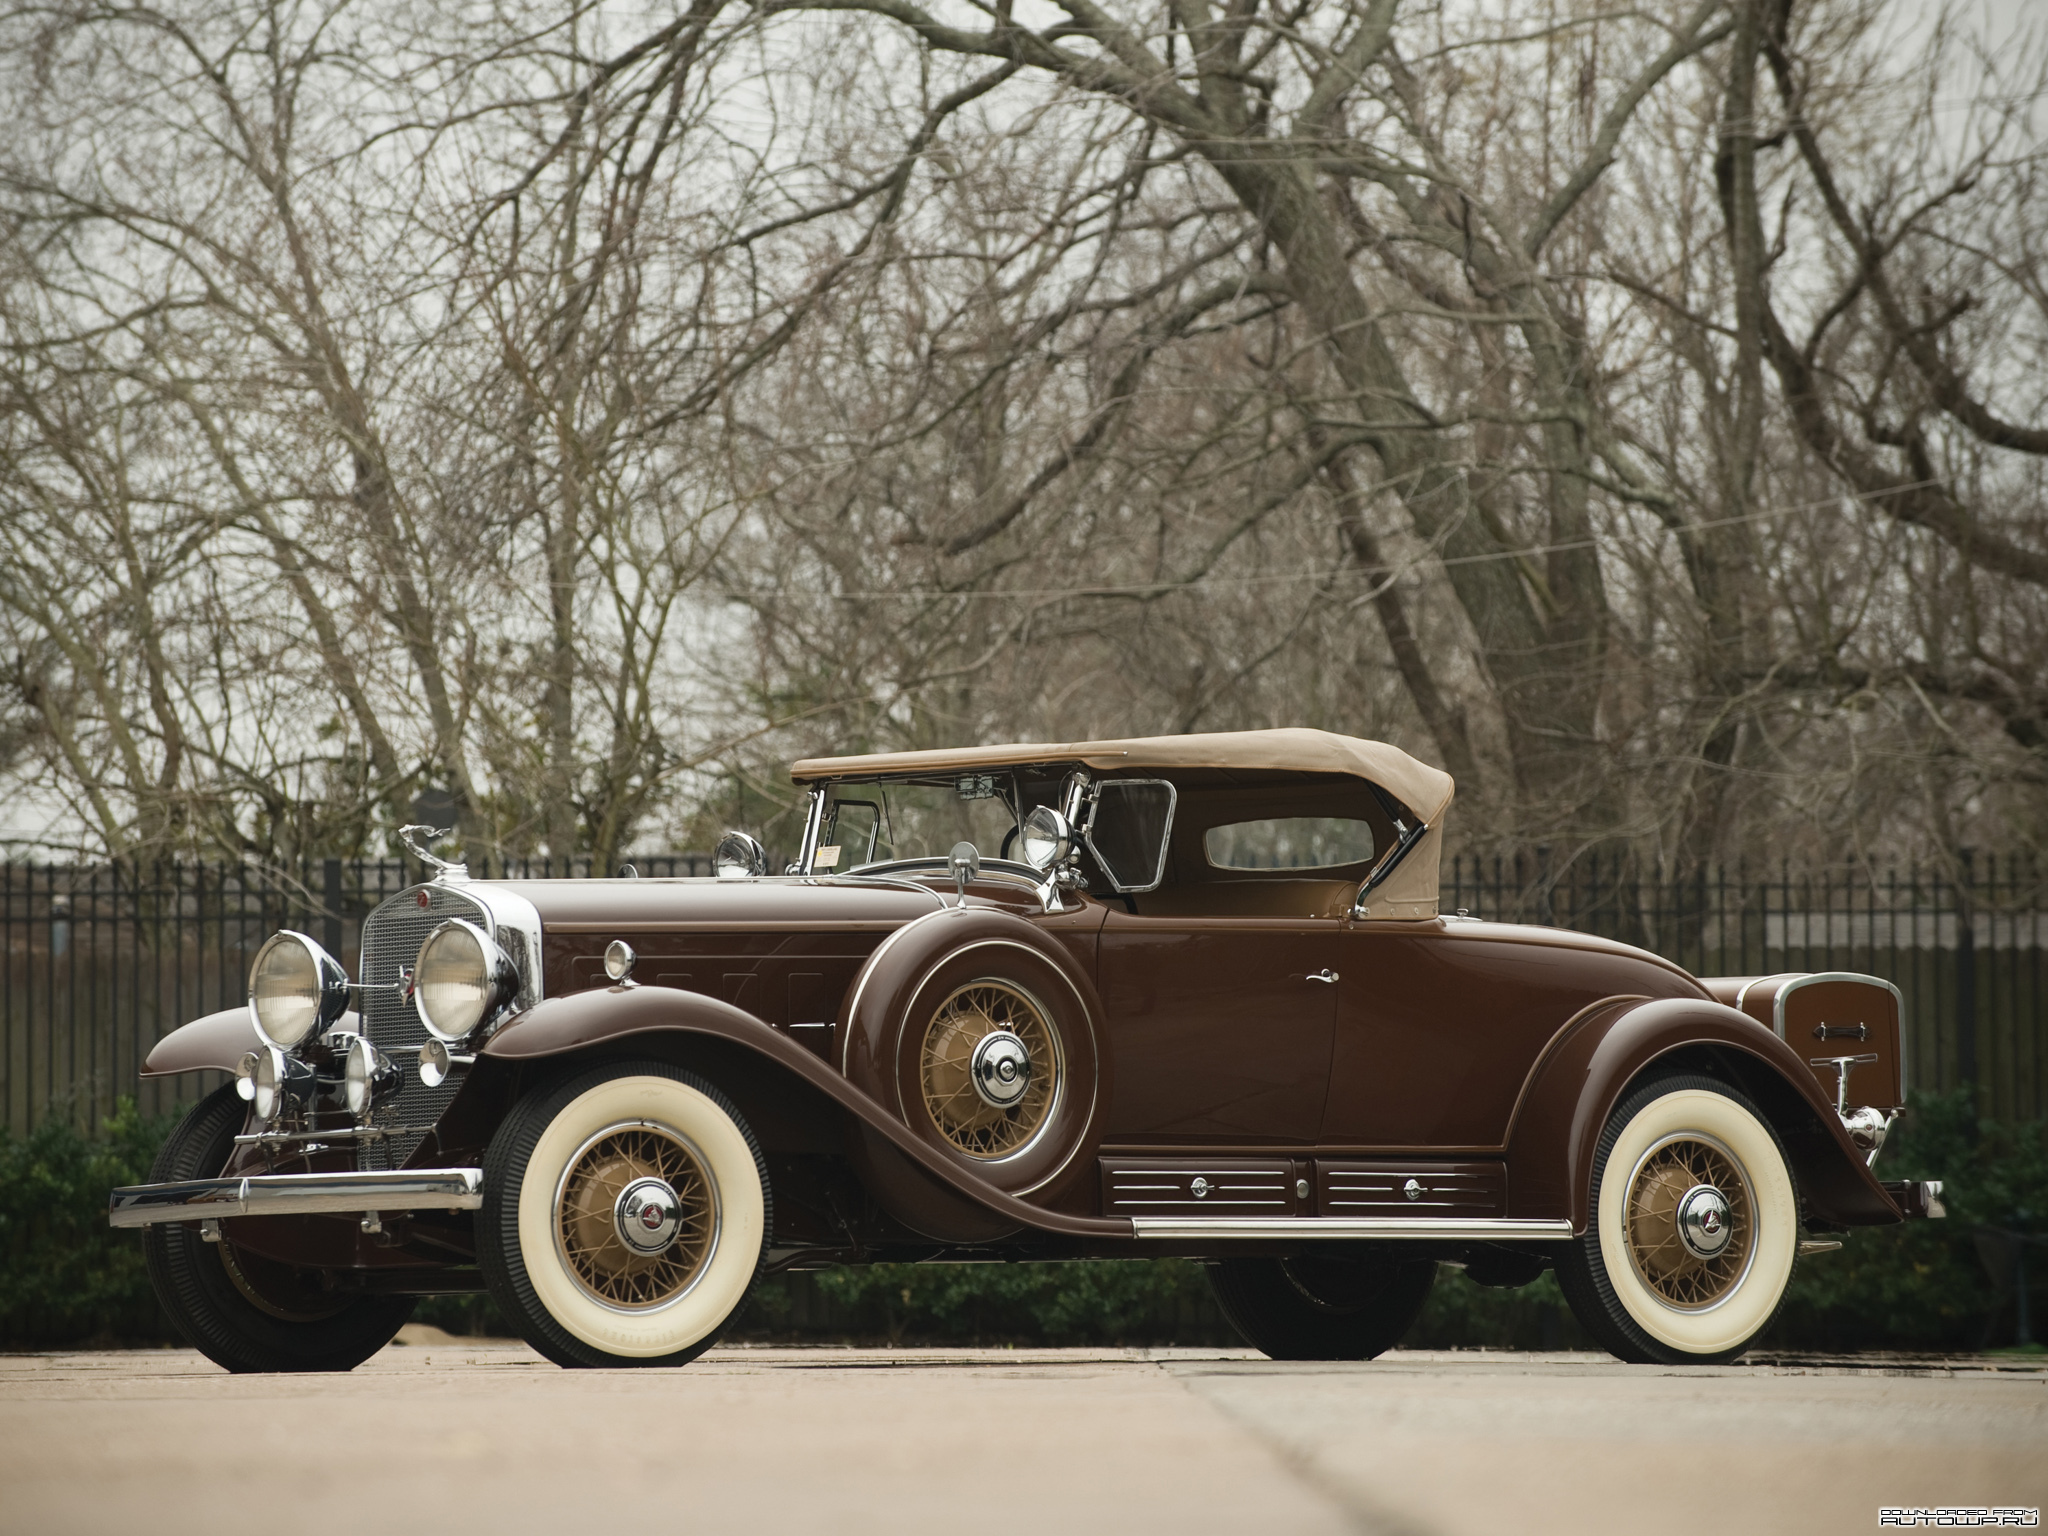 1930 Cadillac Model 452 V16 Backgrounds, Compatible - PC, Mobile, Gadgets| 2048x1536 px